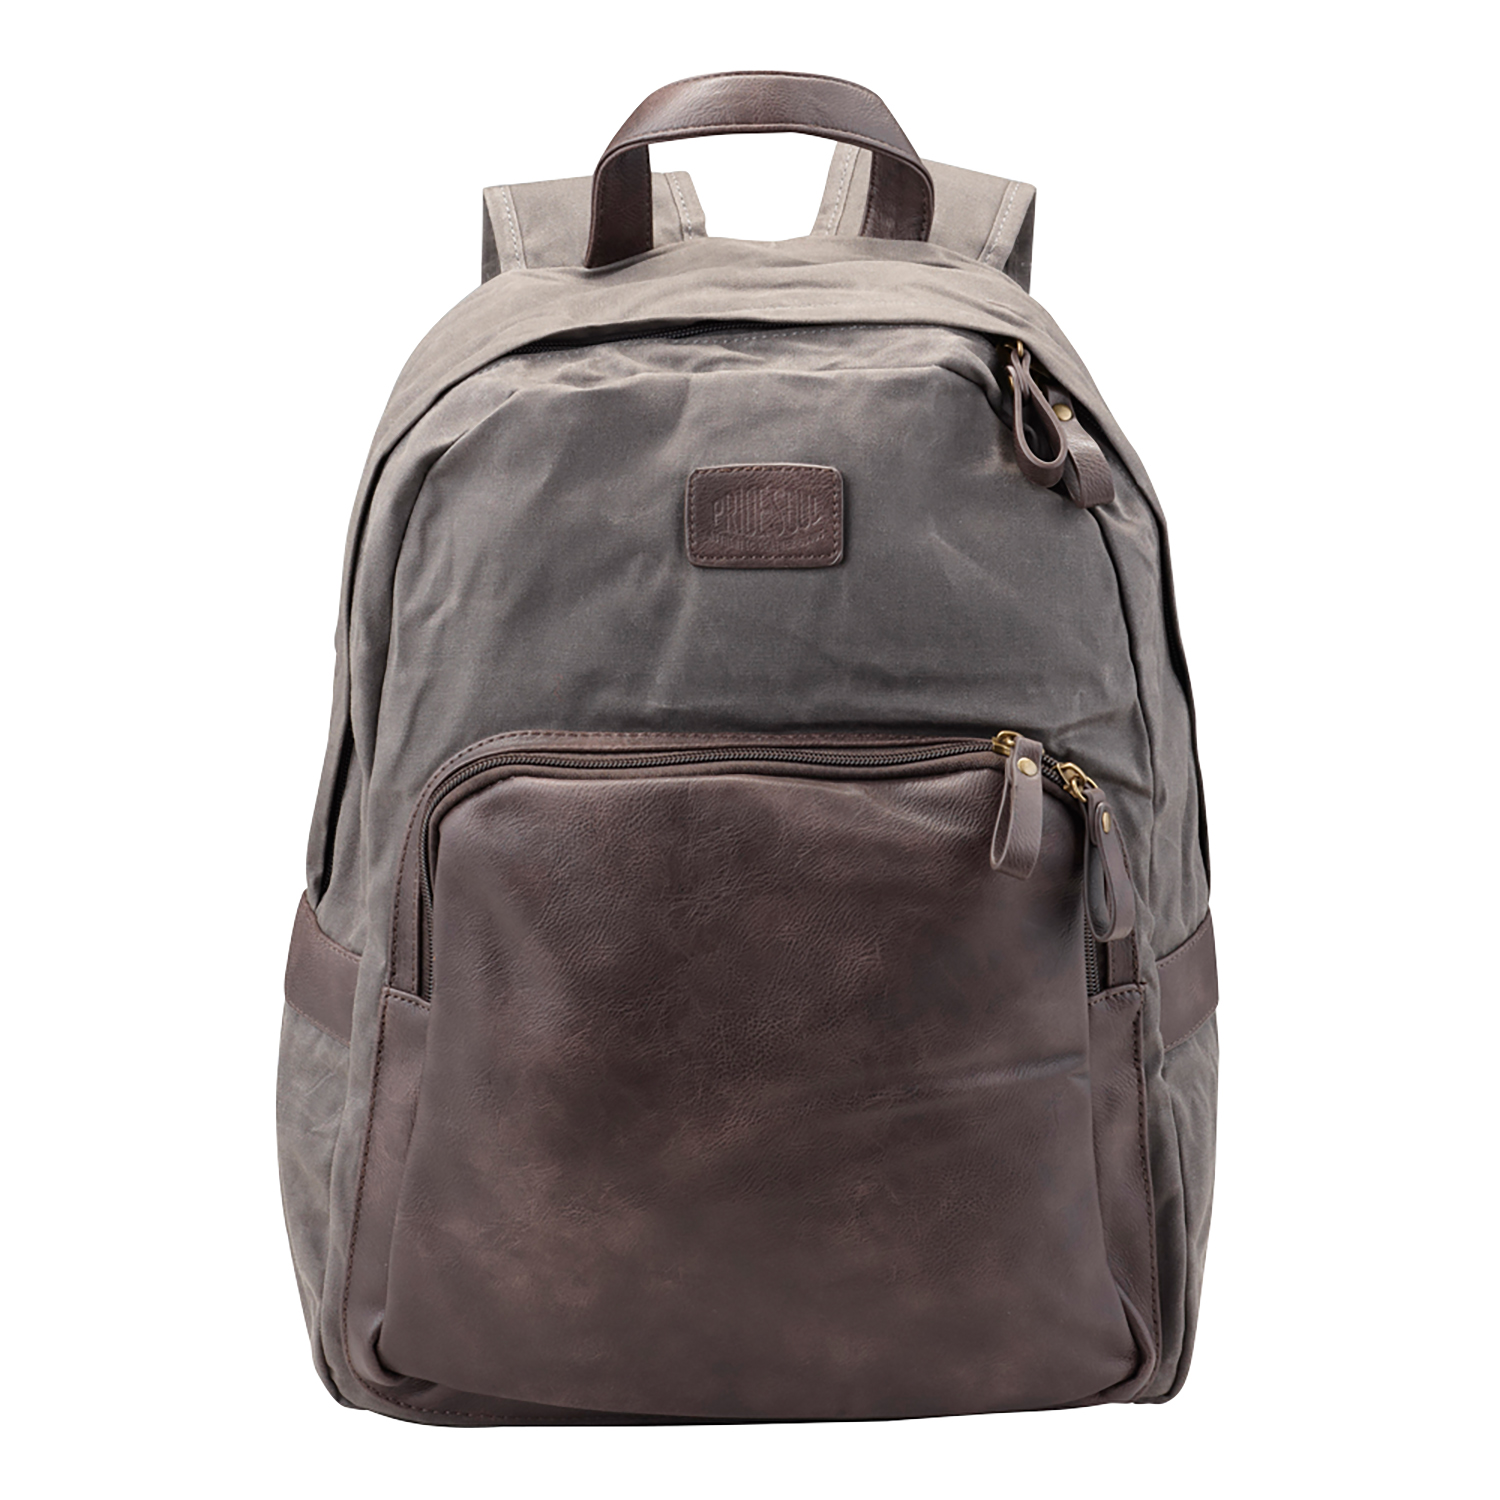 Briefcases & Luggage Pride and Soul Sensation 15inch Laptop Backpack Grey/Brown Ref 47301